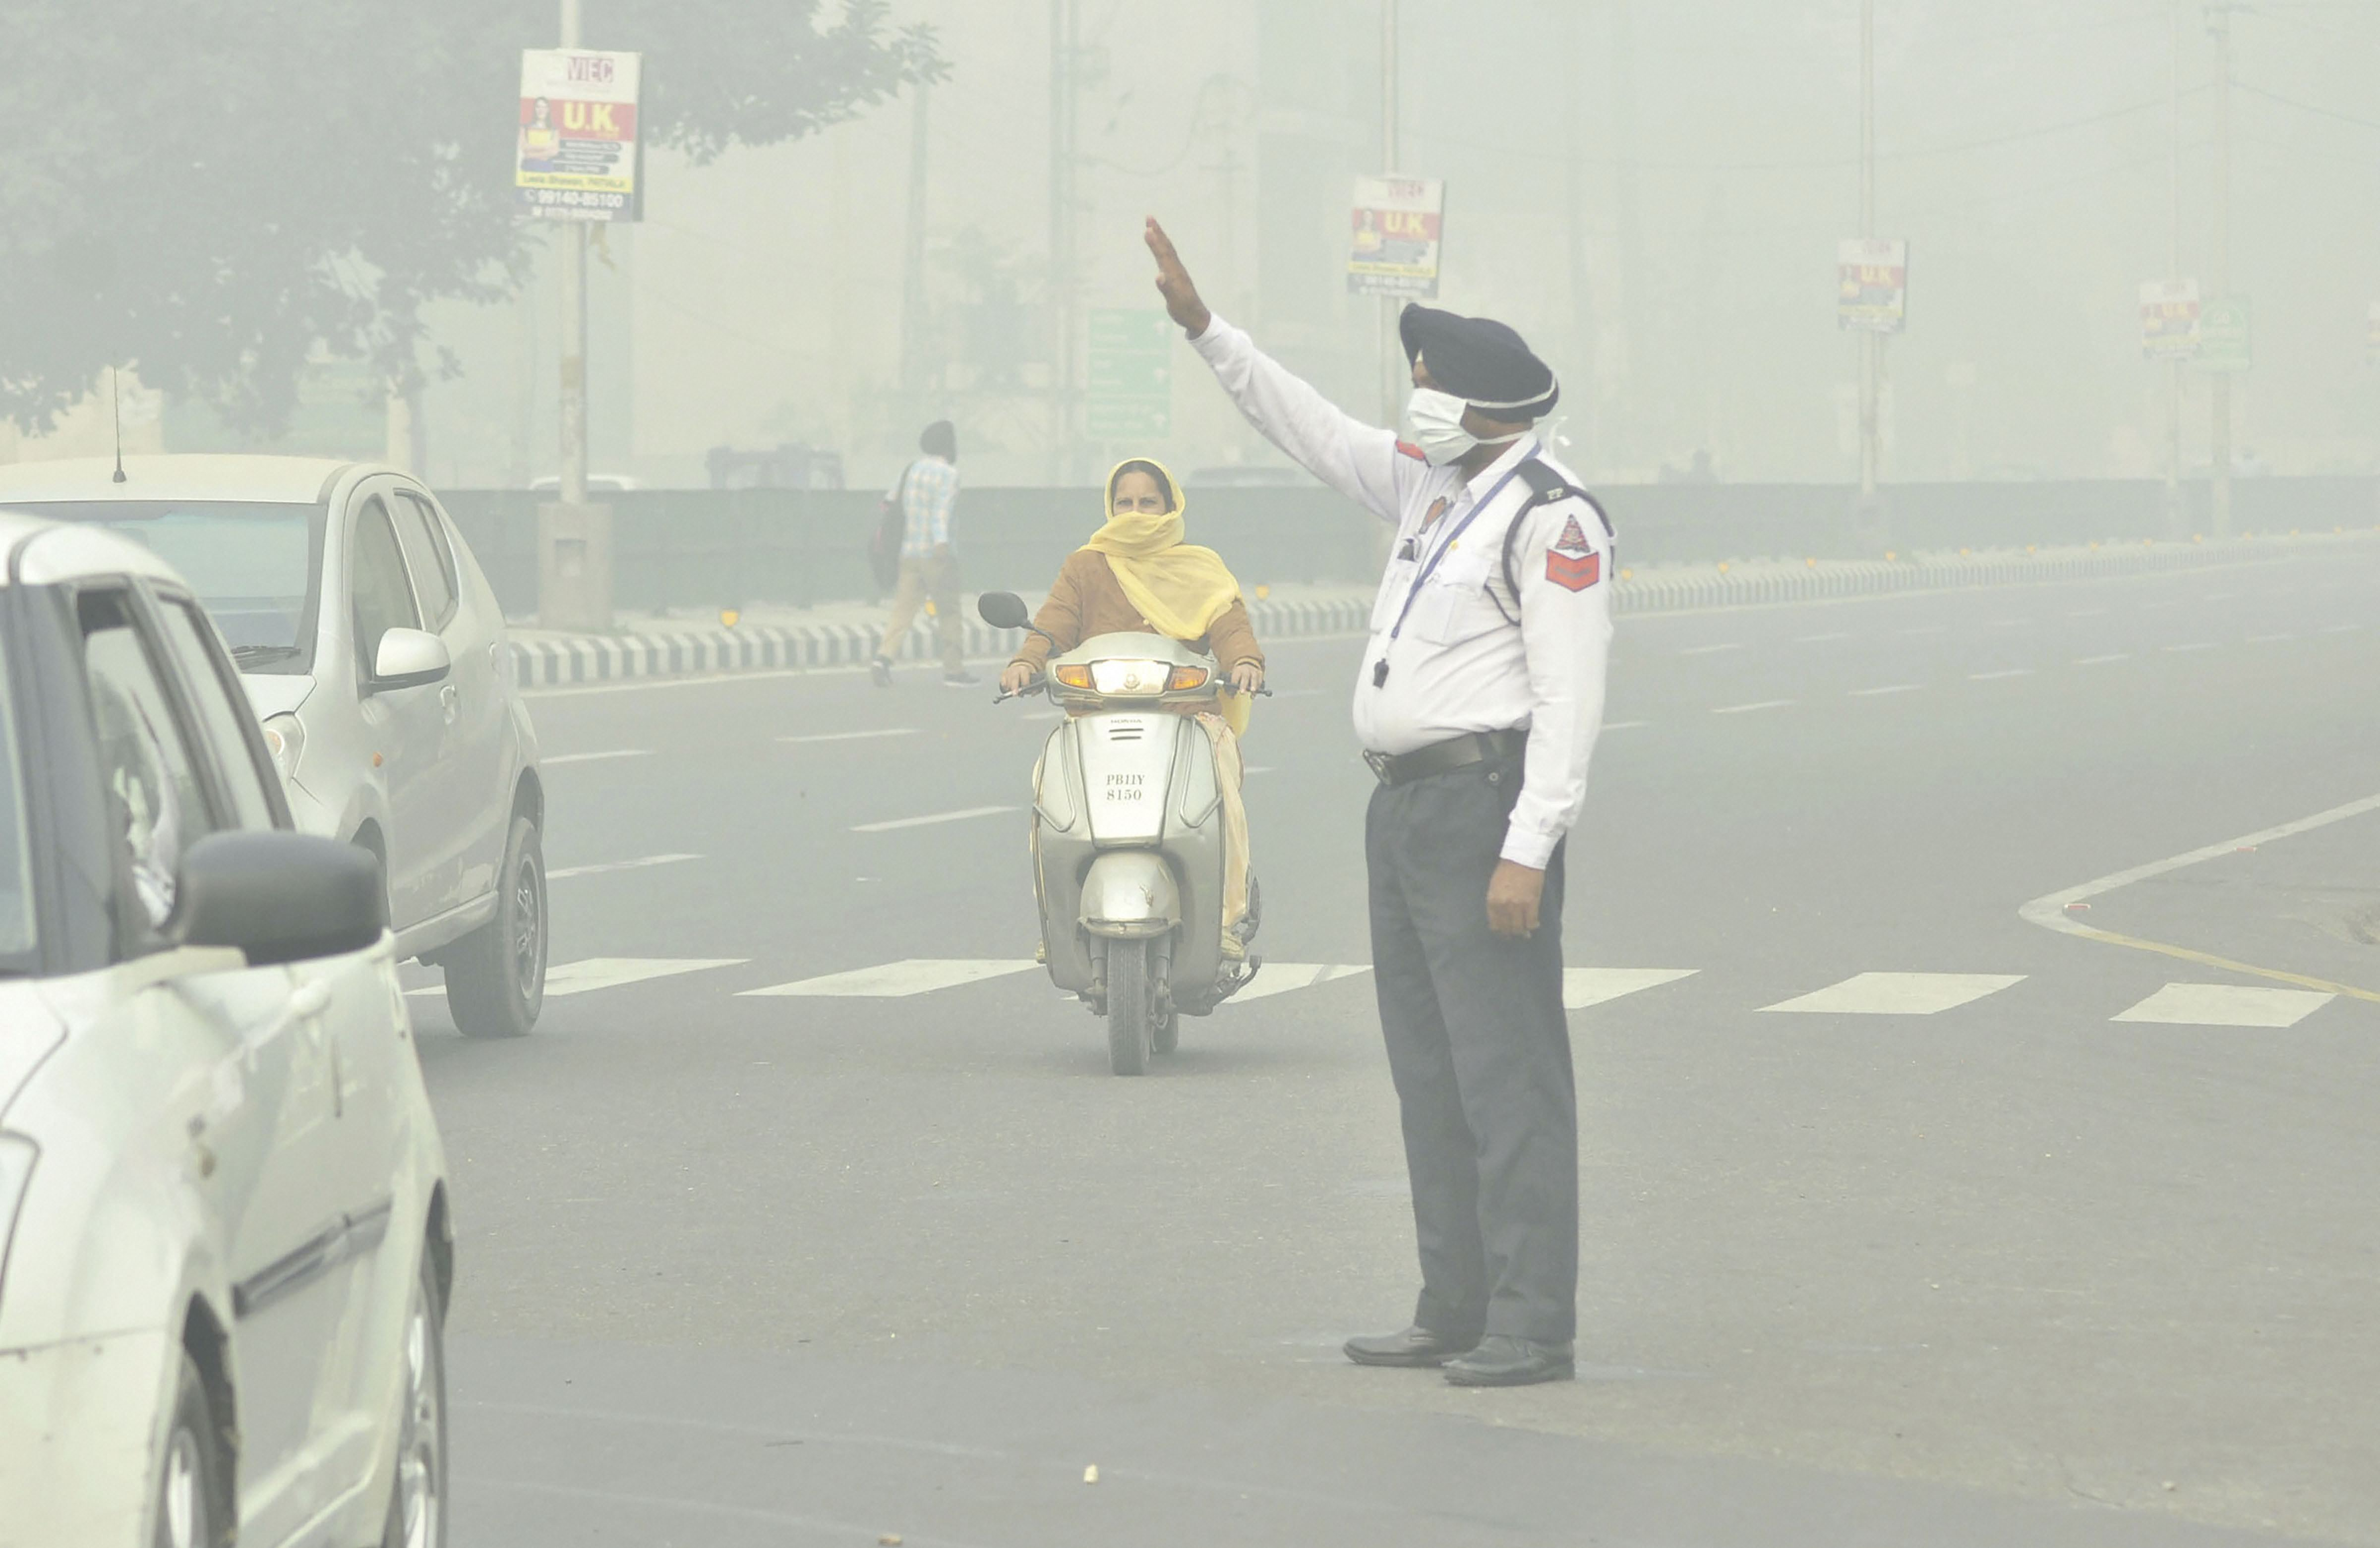 A policeman wears a mask as he manages traffic amid heavy smog, in Patiala, Sunday, November 3, 2019.